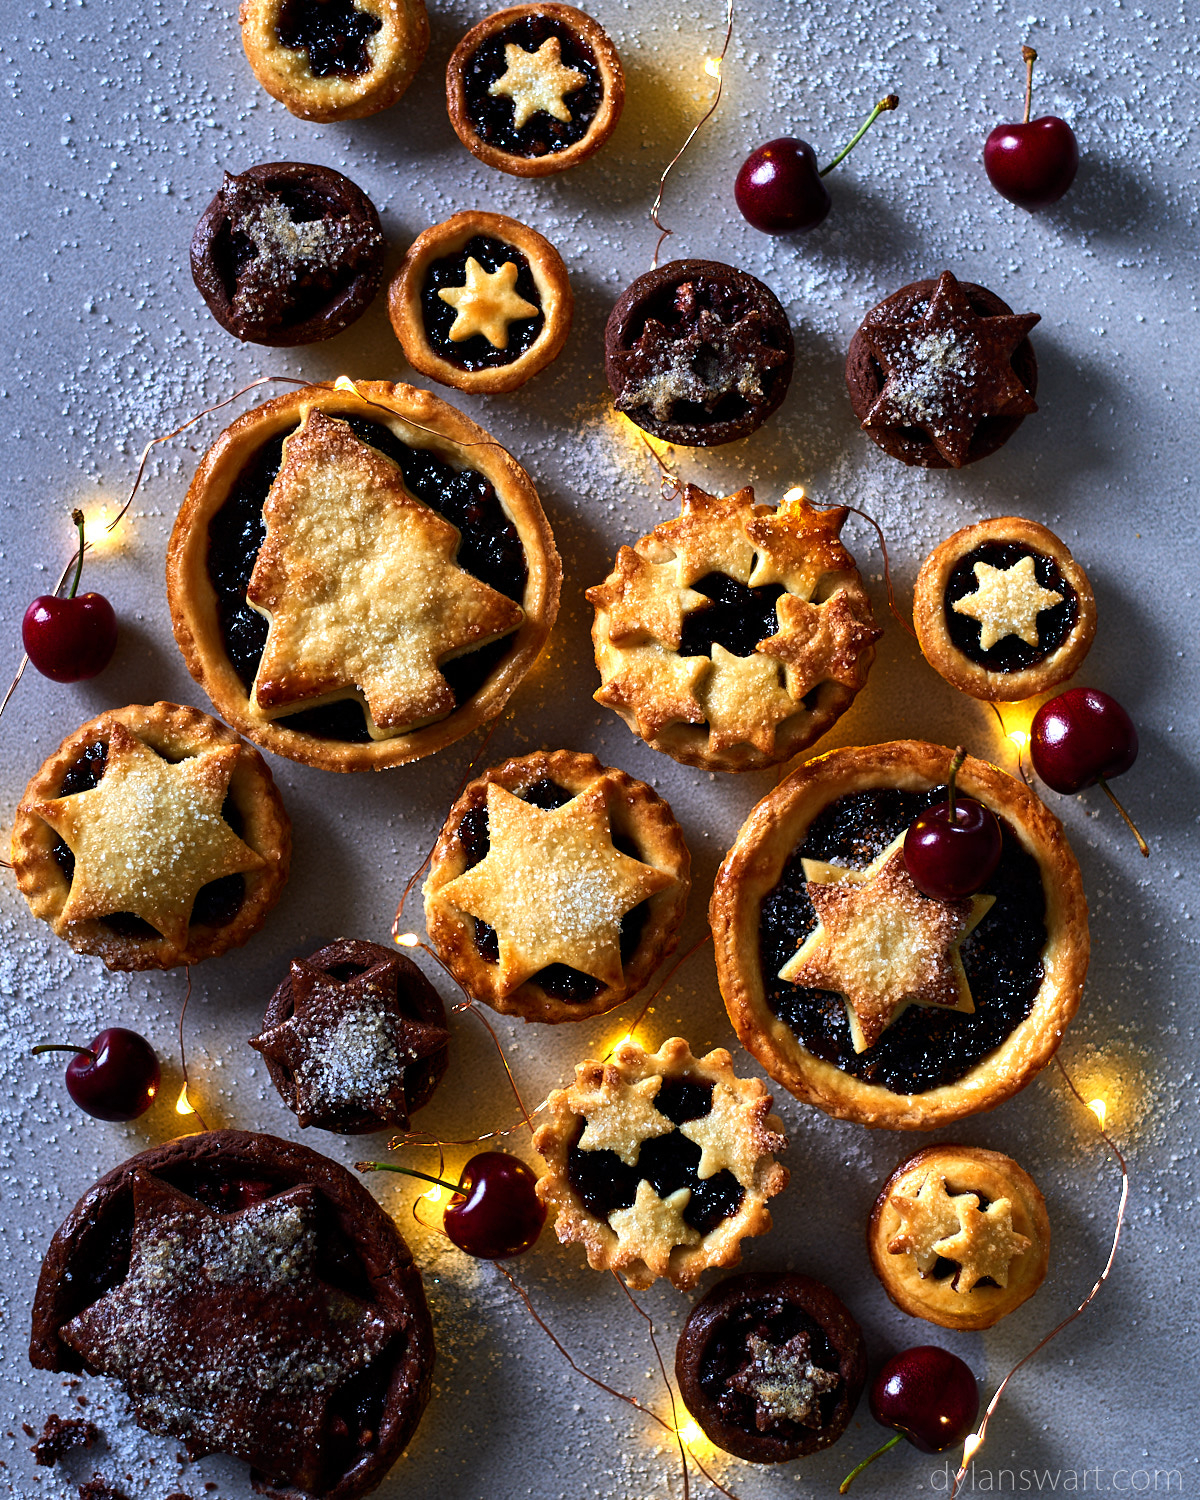 Duo of traditional, and chocolate and cherry Christmas mince pies